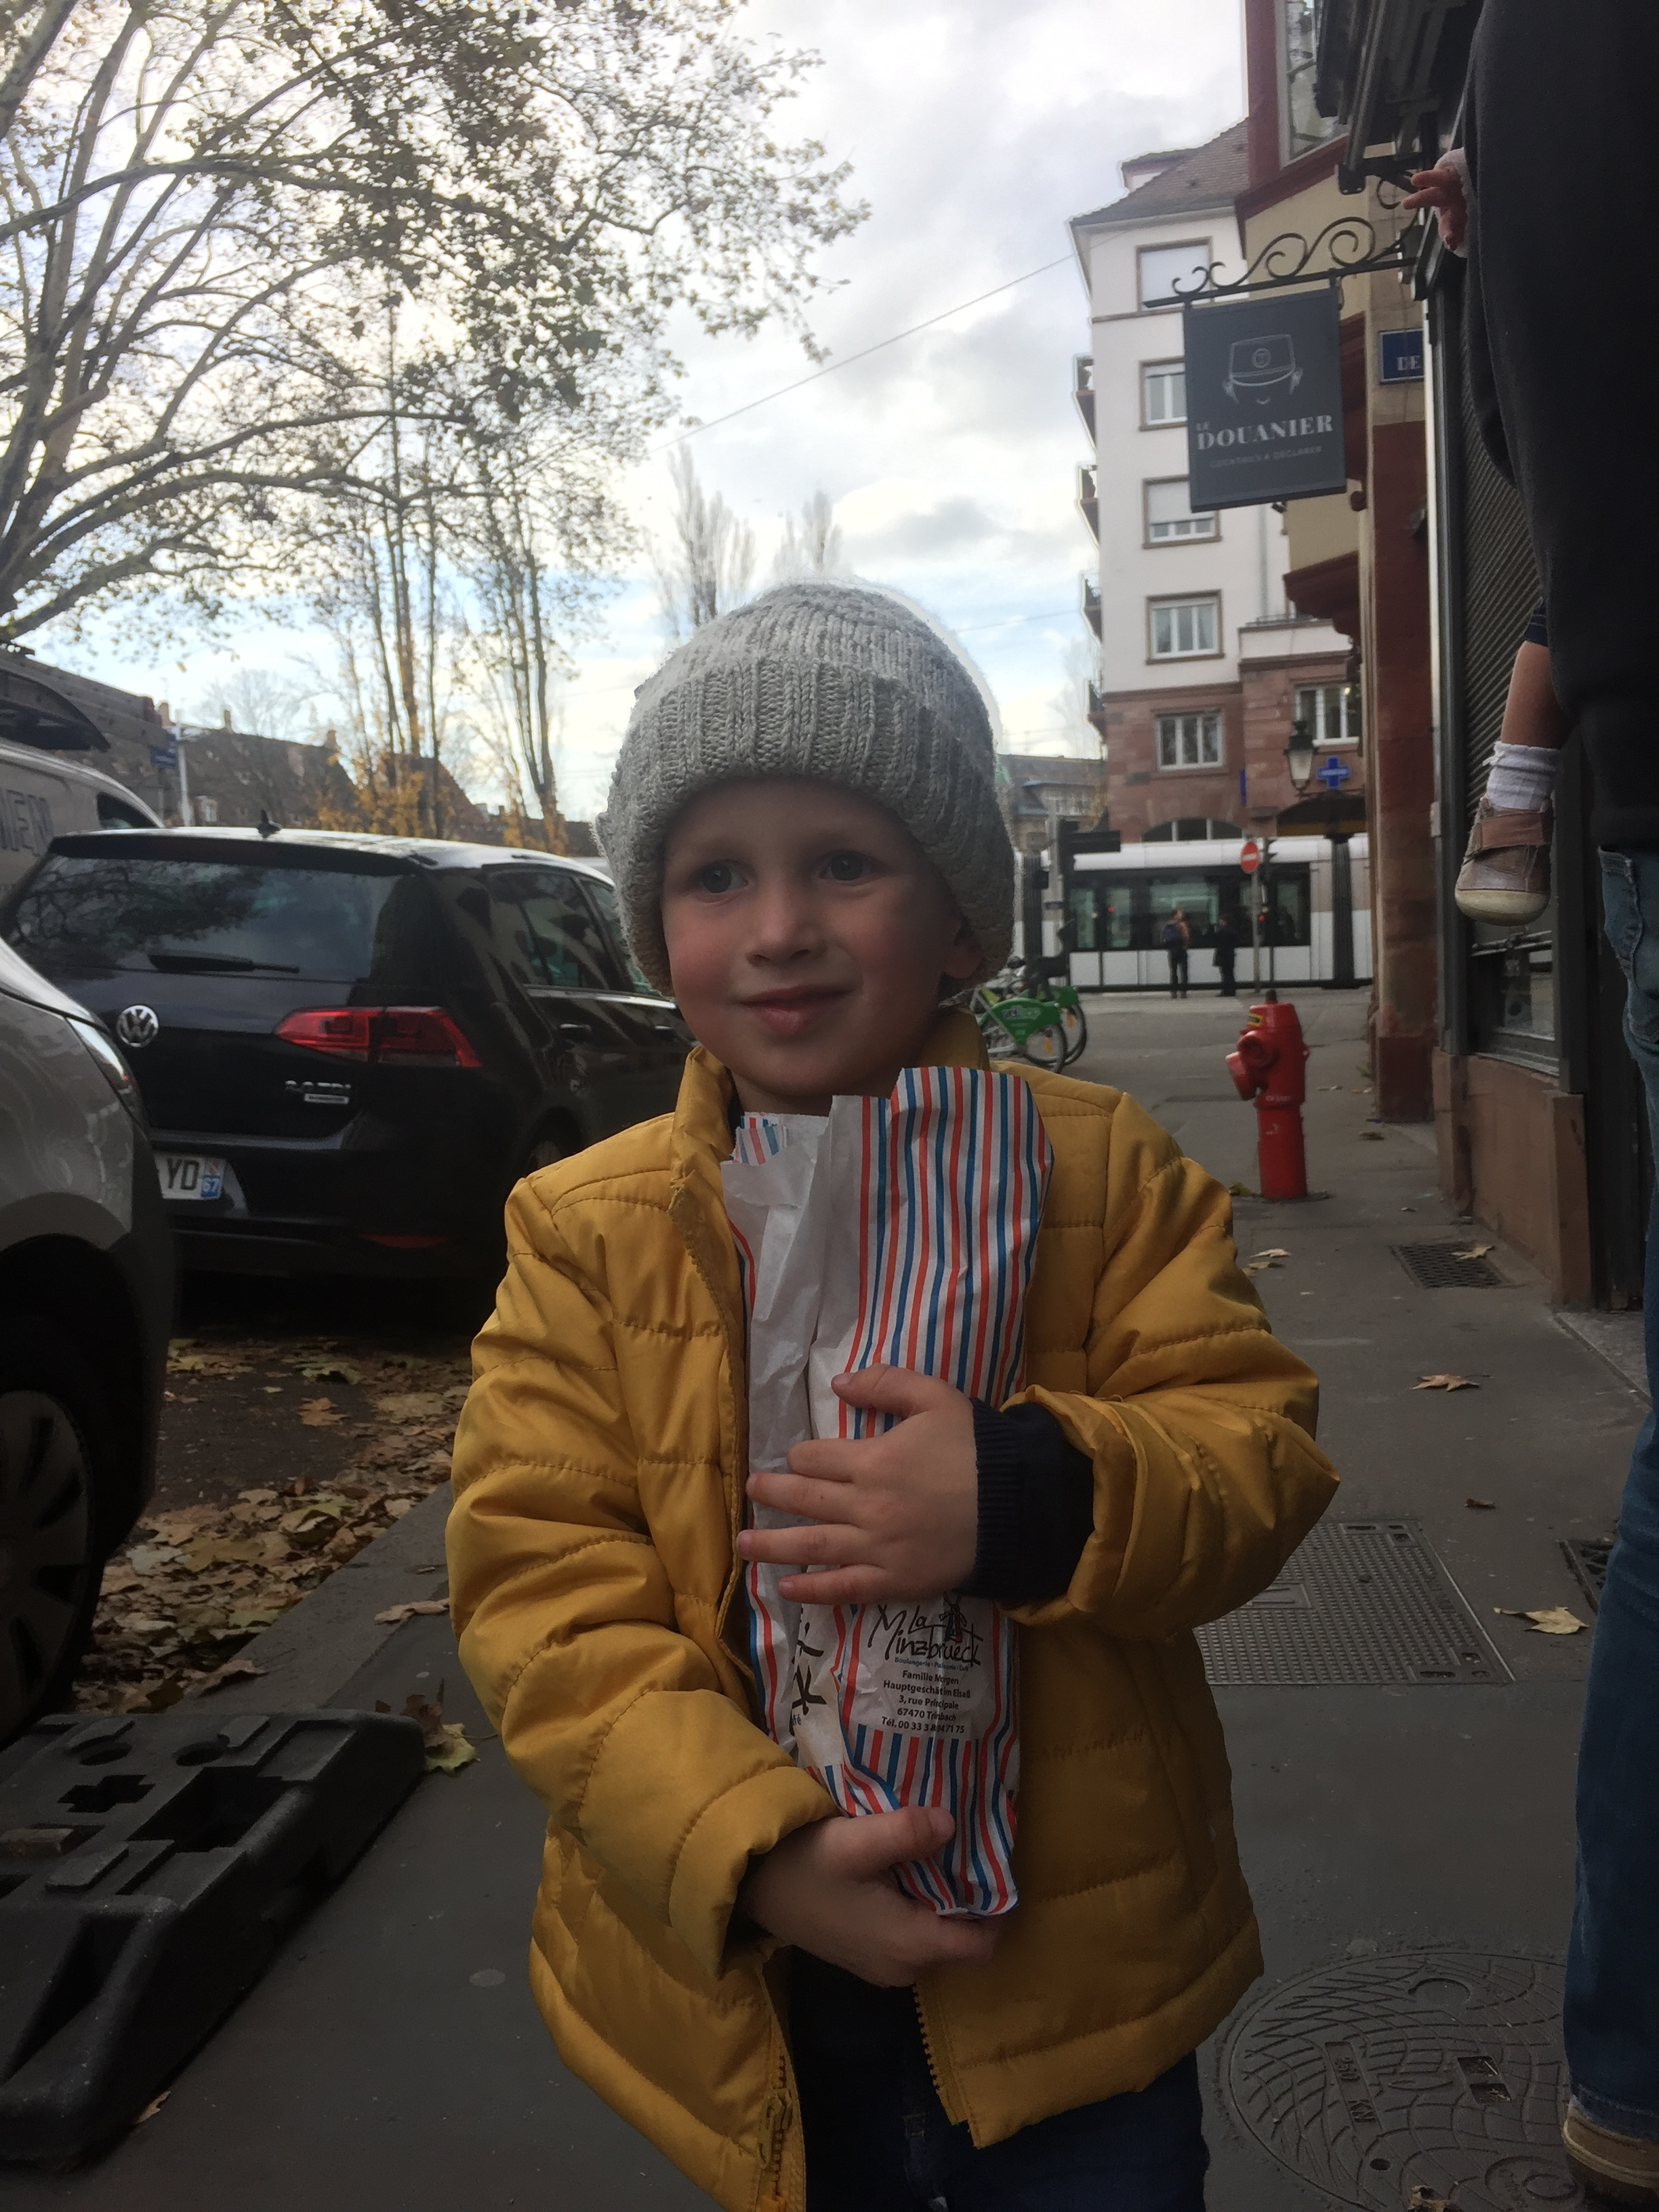 Henry and his bakery purchase. Oh, how much bread we ate.